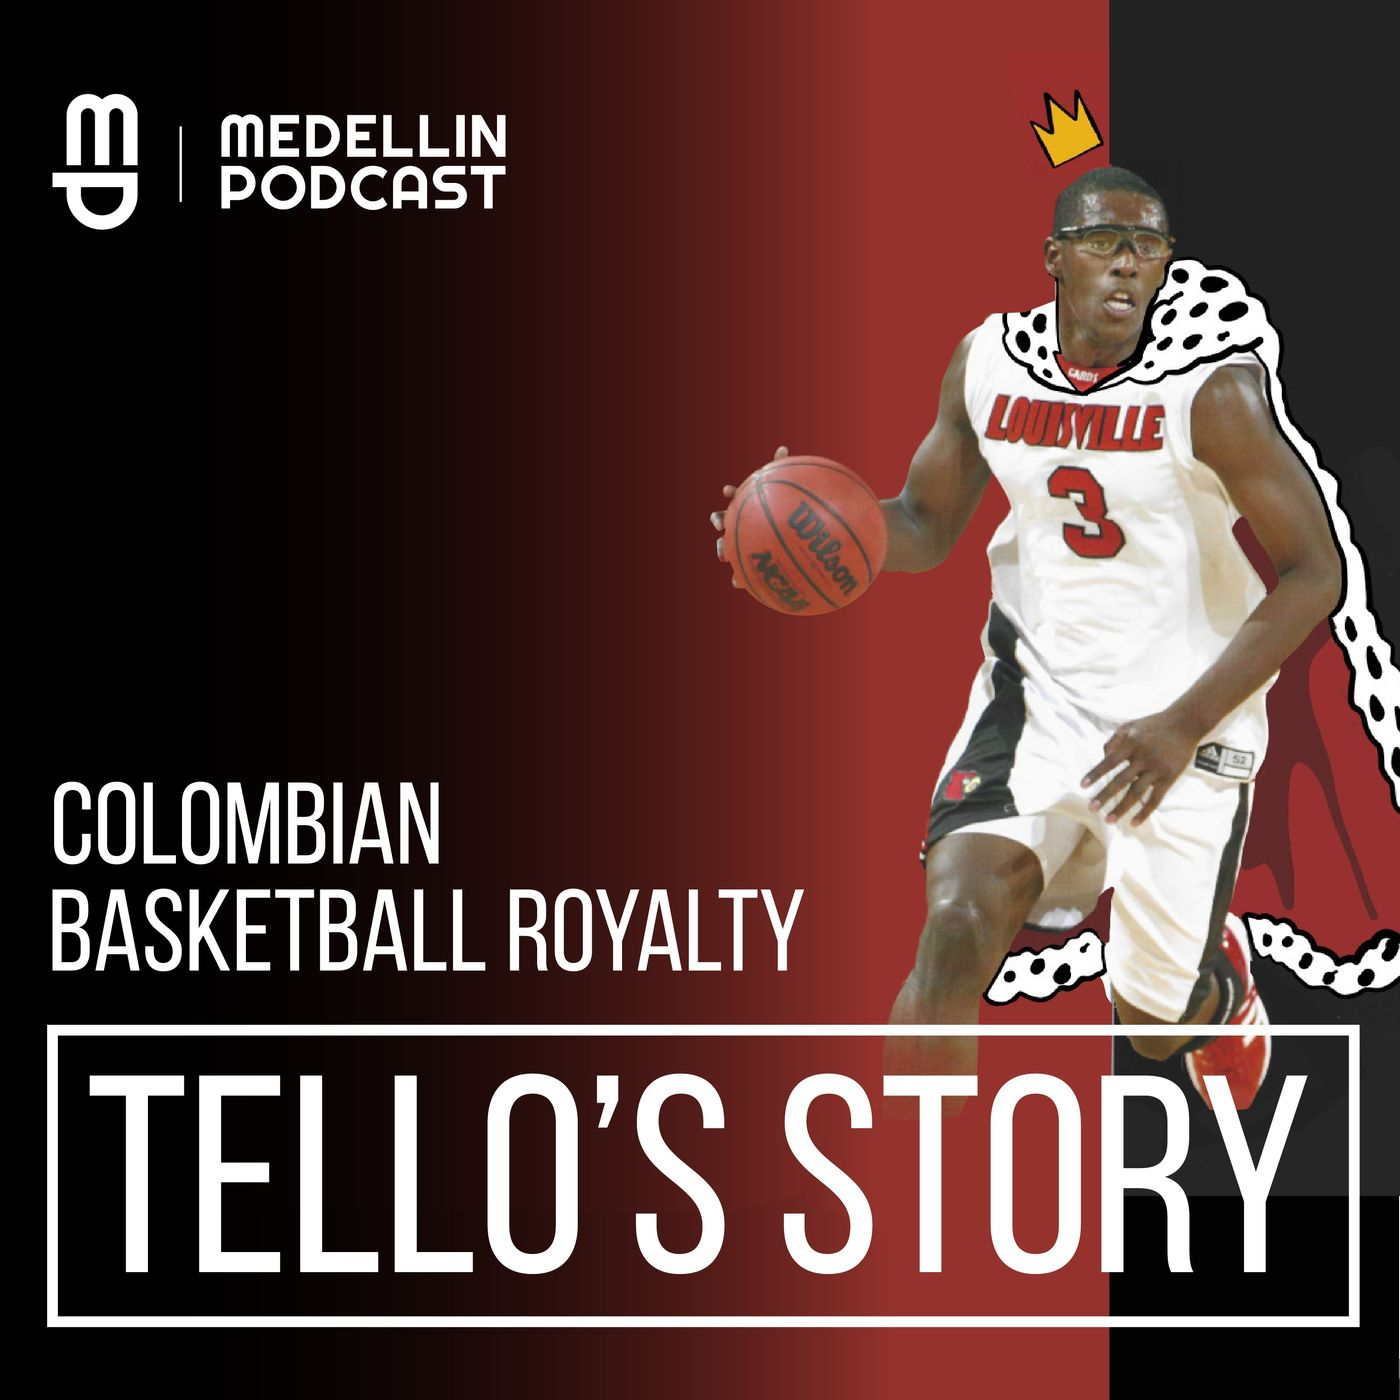 Colombian Basketball Royalty - Tello's Story - Episode 41